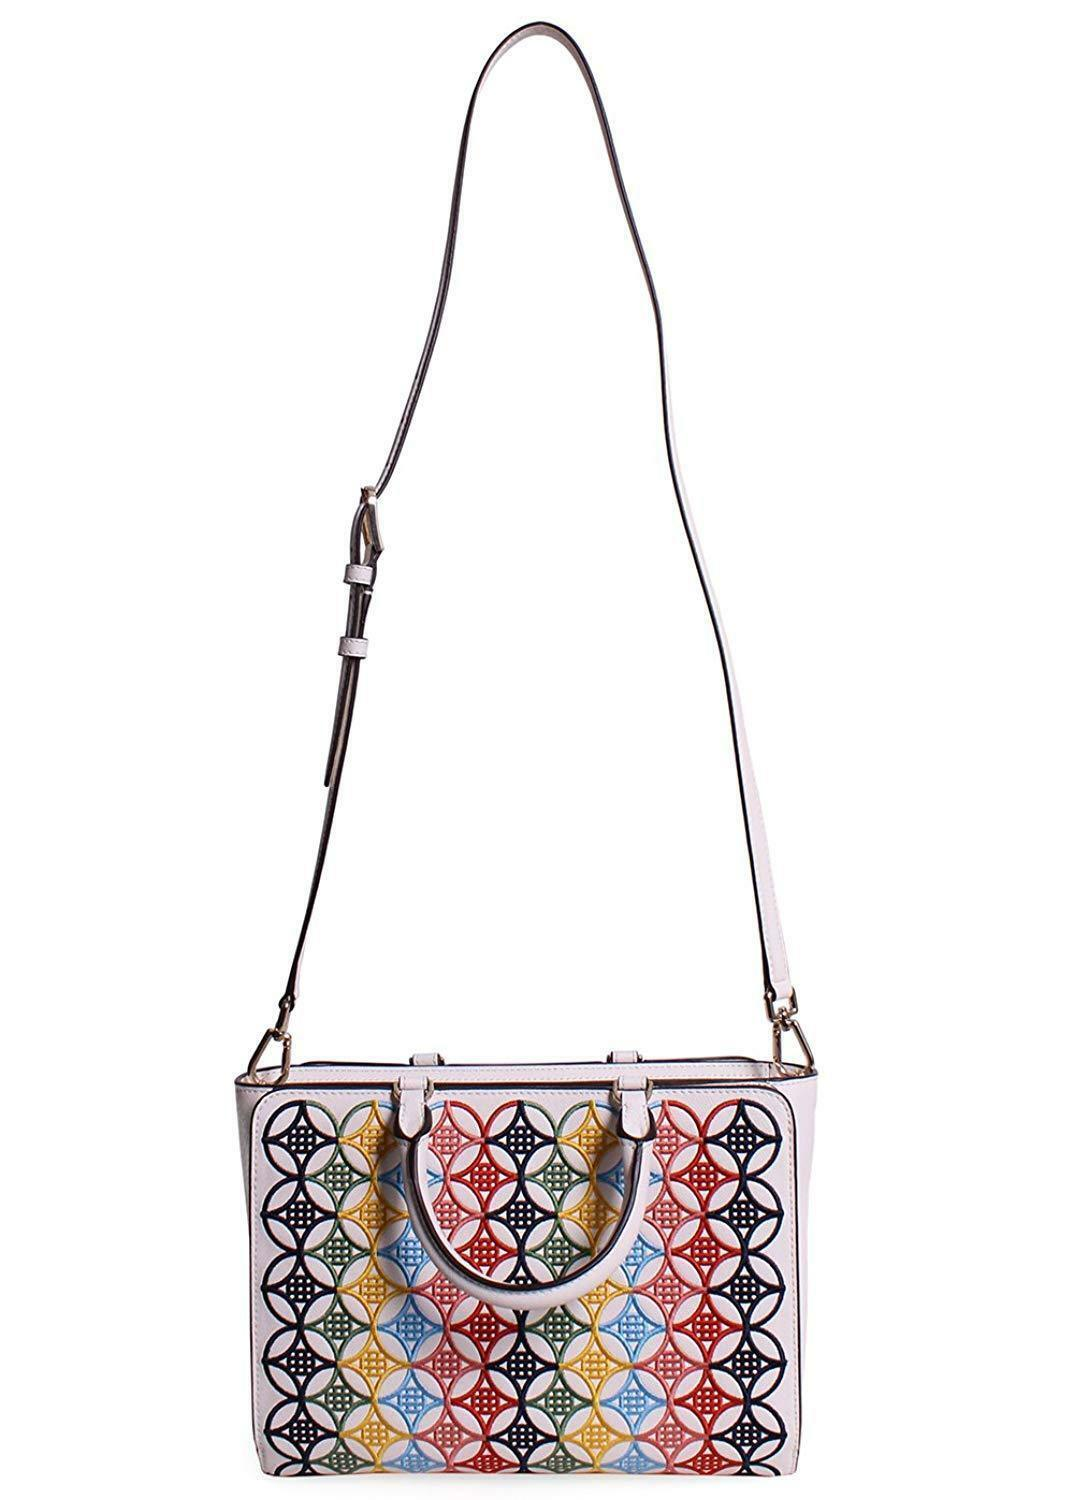 Tory Burch Robinson Embroidered Small Zip Tote in New Ivory Multi image 5